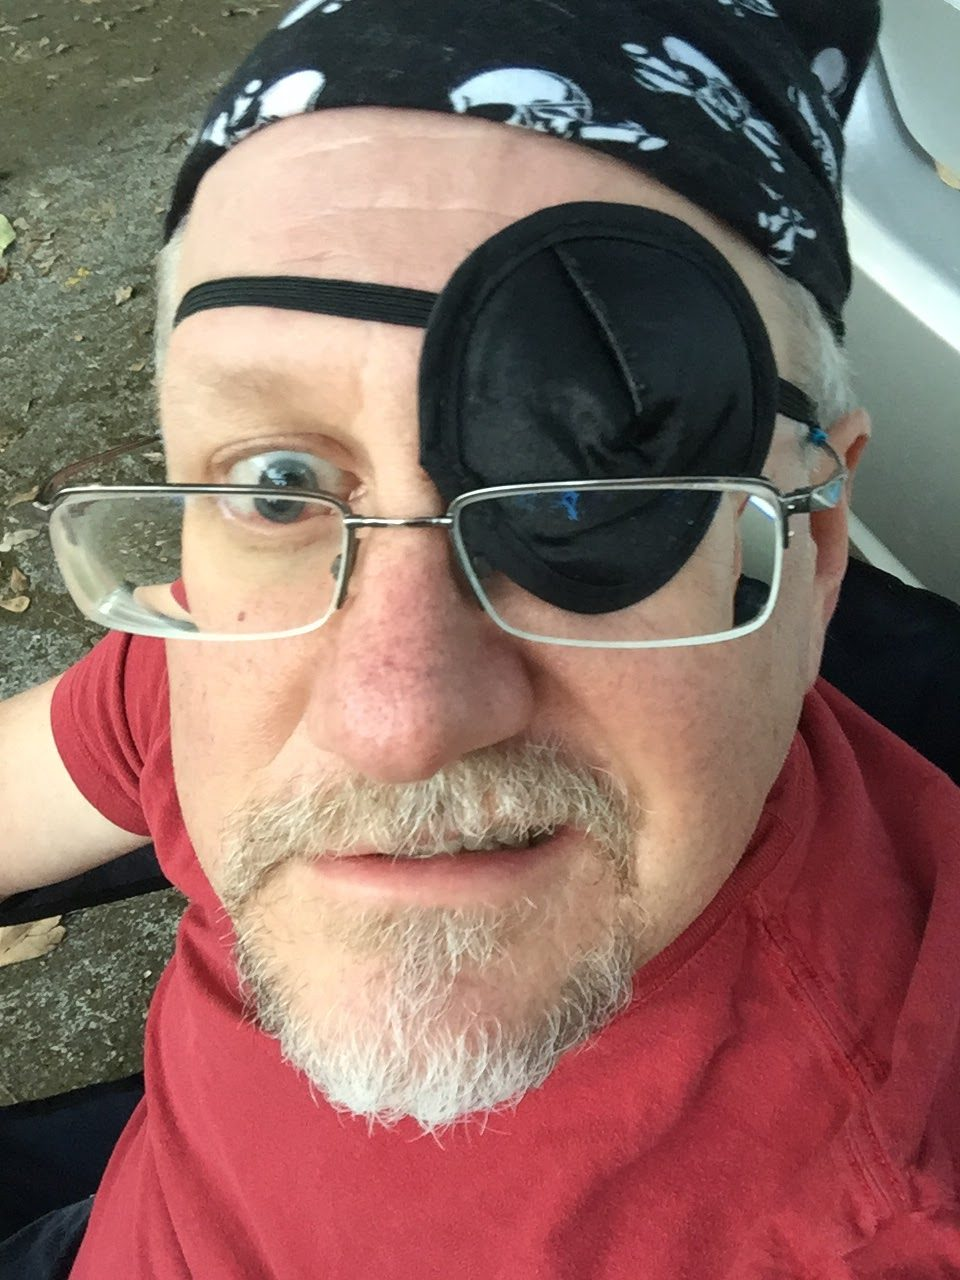 Me dressed as a pirate